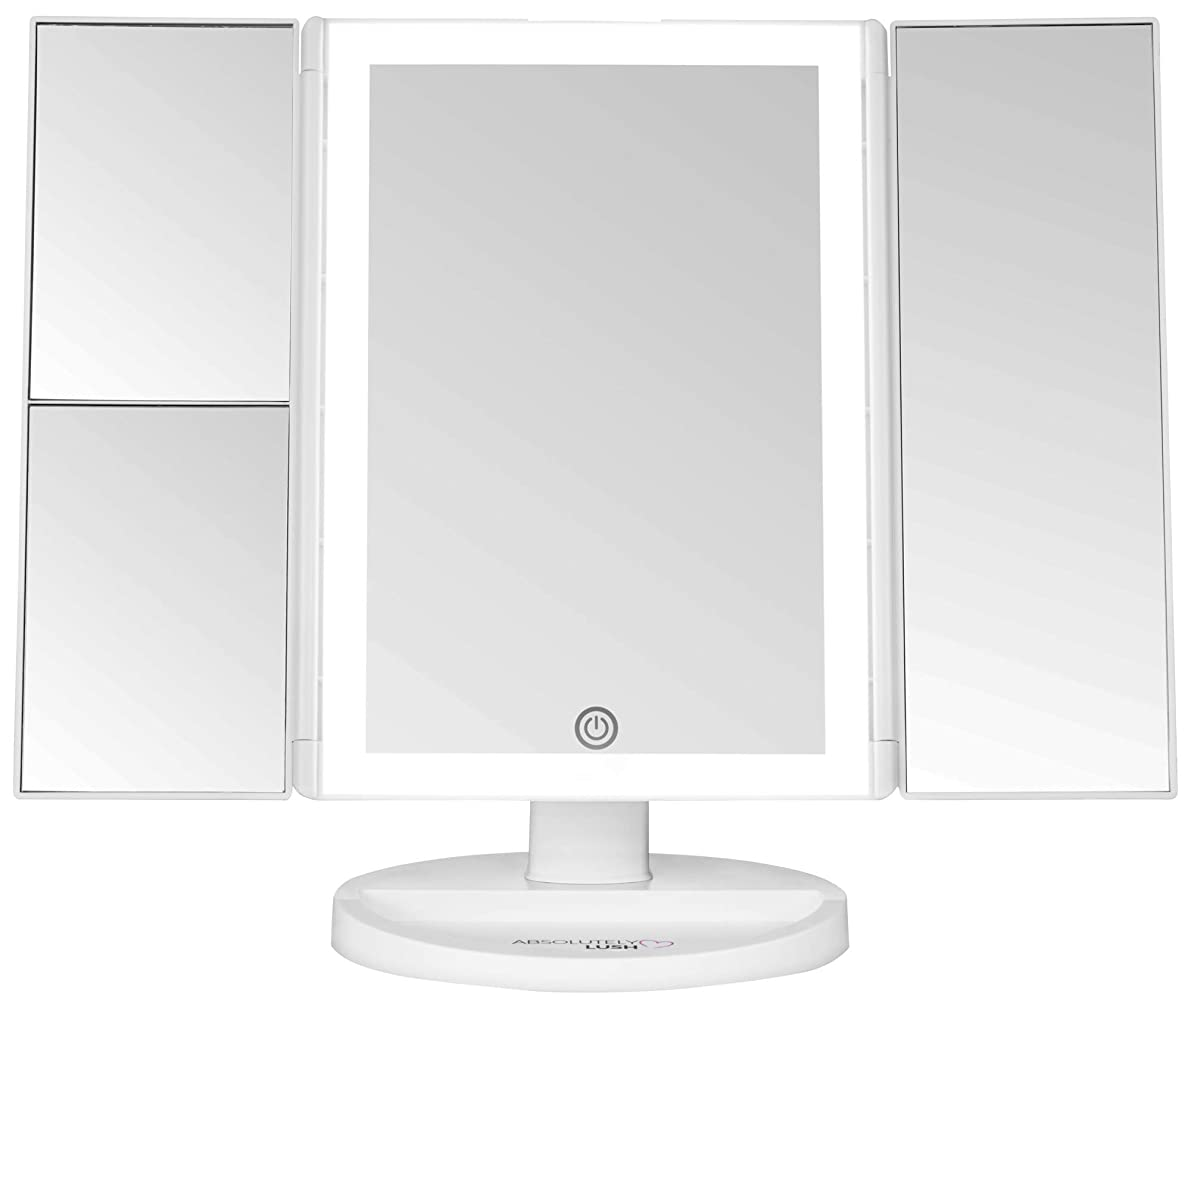 Lighted Makeup Mirror With Magnification | Vanity Mirror with Lights and Touch Screen Dimming – LED Trifold 1x 2x 3x Magnifying Mirrors – Small Portable Makeup Accessories | Make Up Mirror with Lights